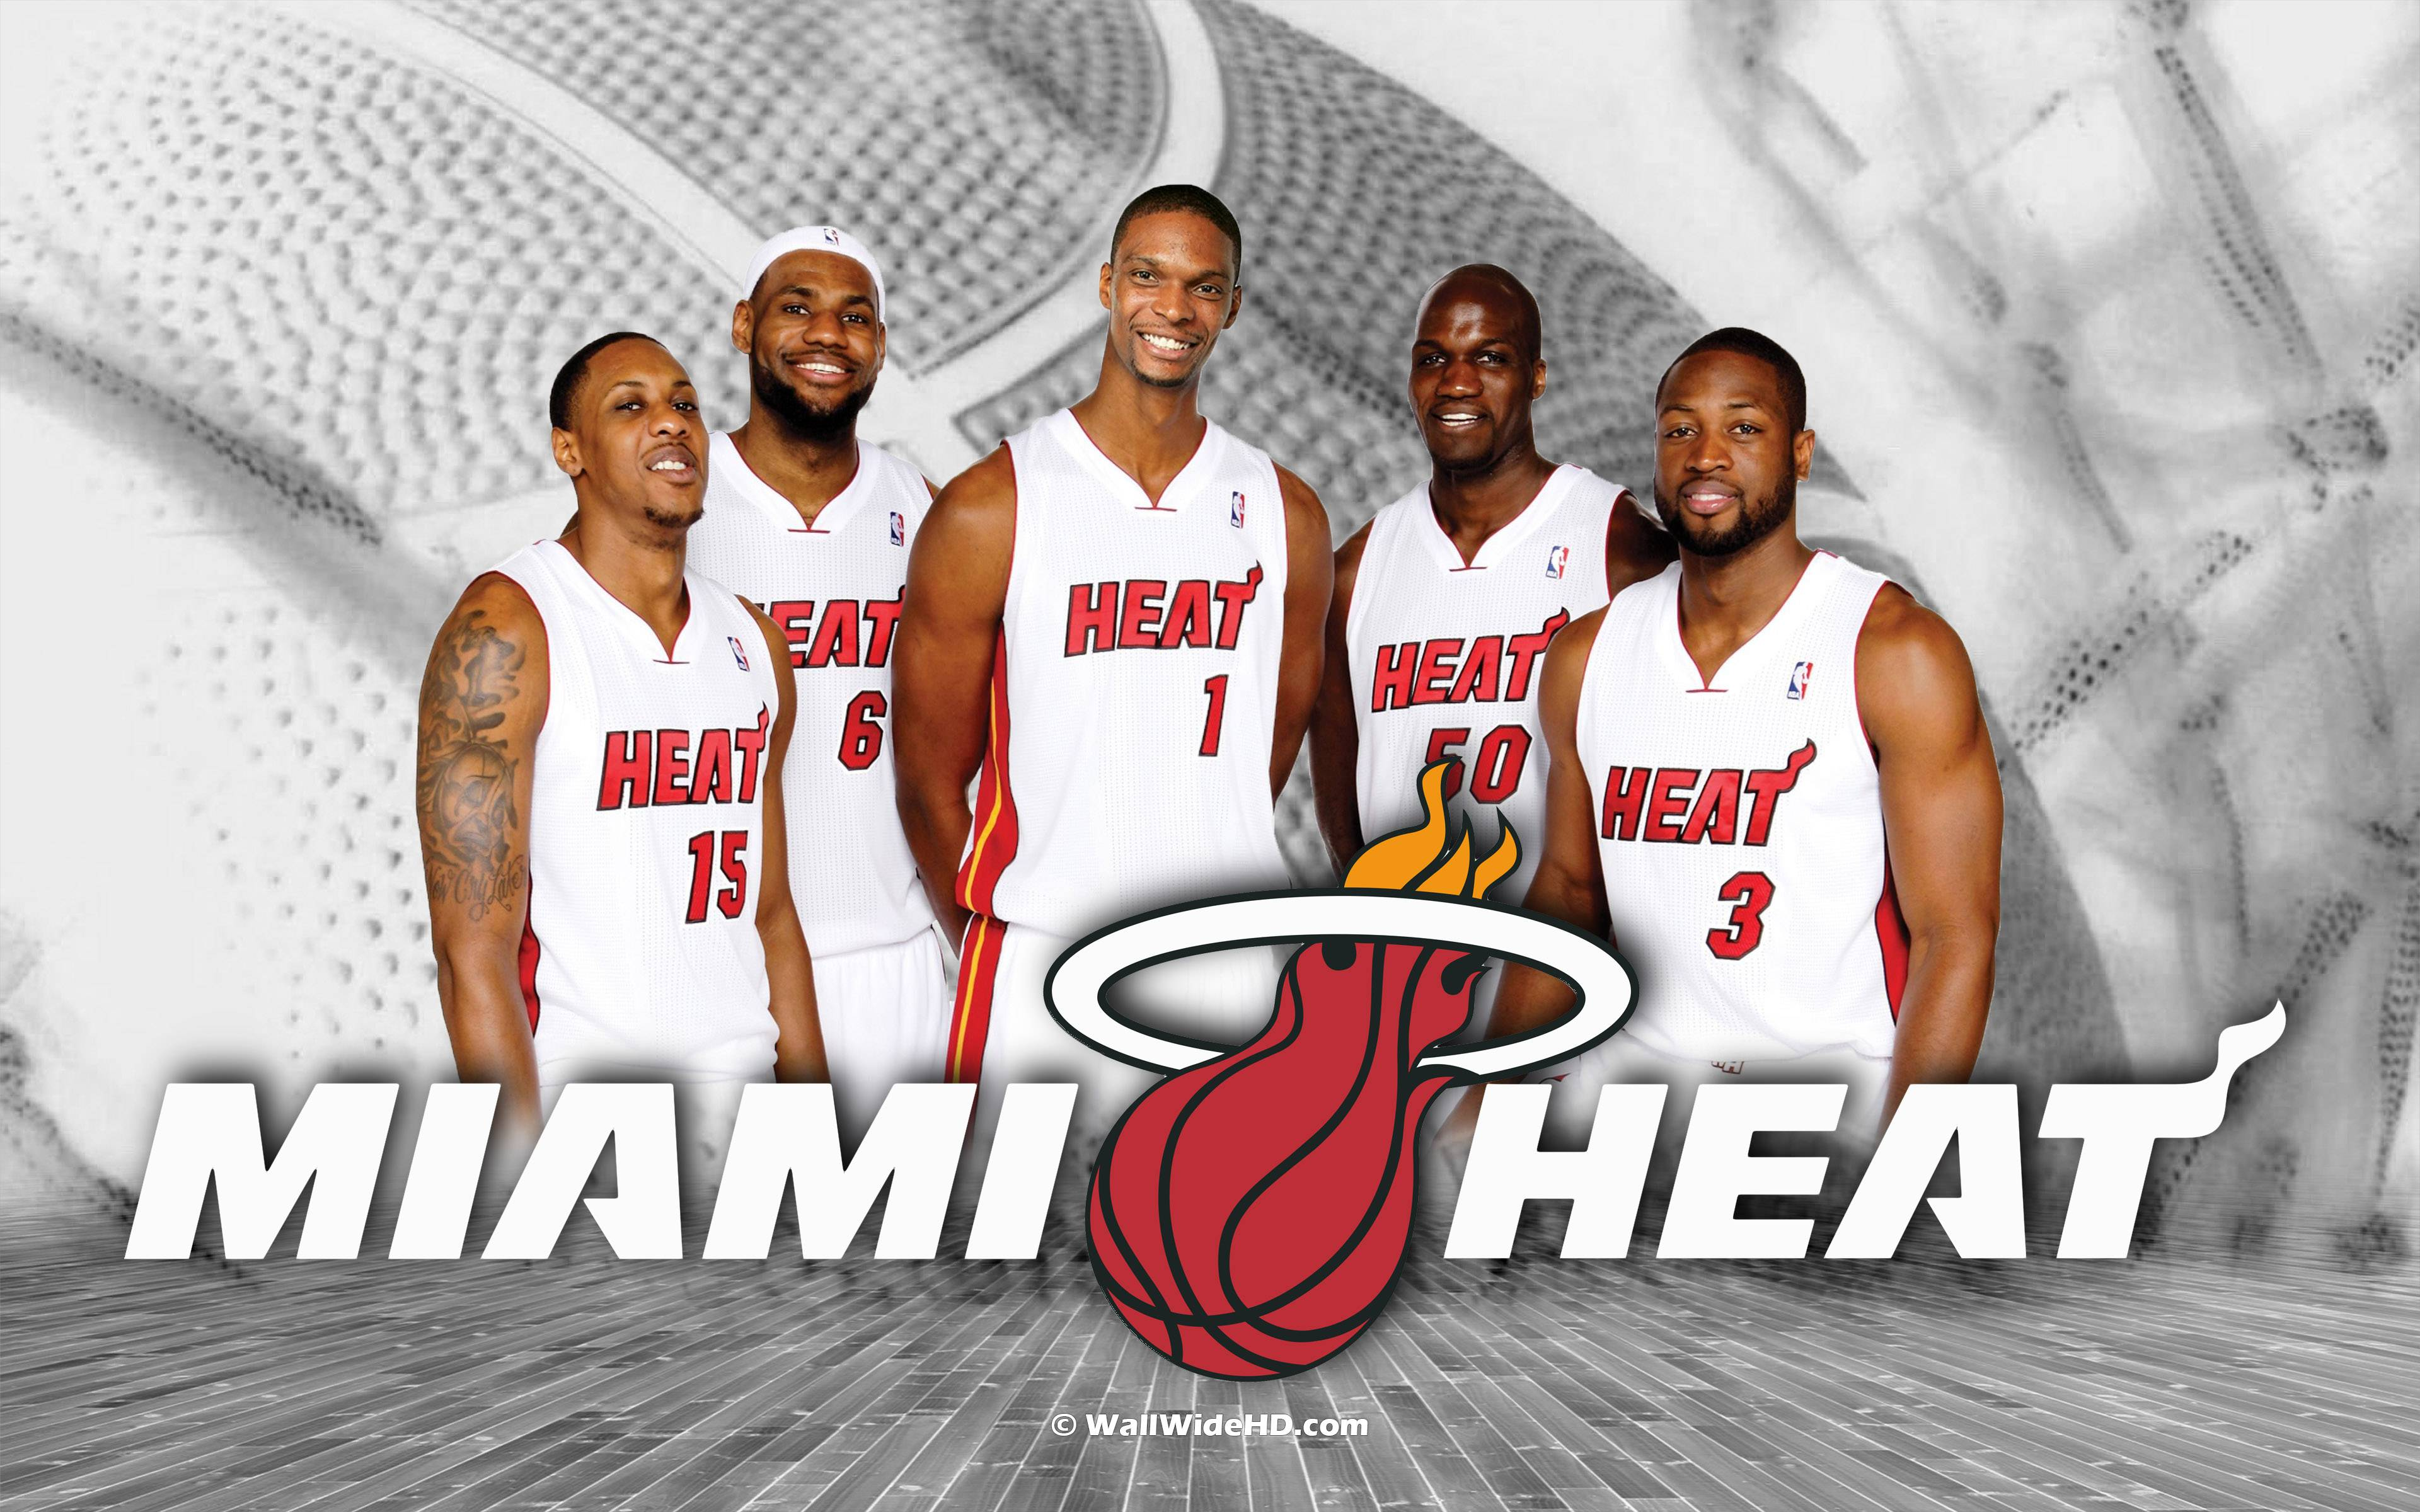 2014 Miami Heat Starting Lineup NBA Wallpapers Wide or HD